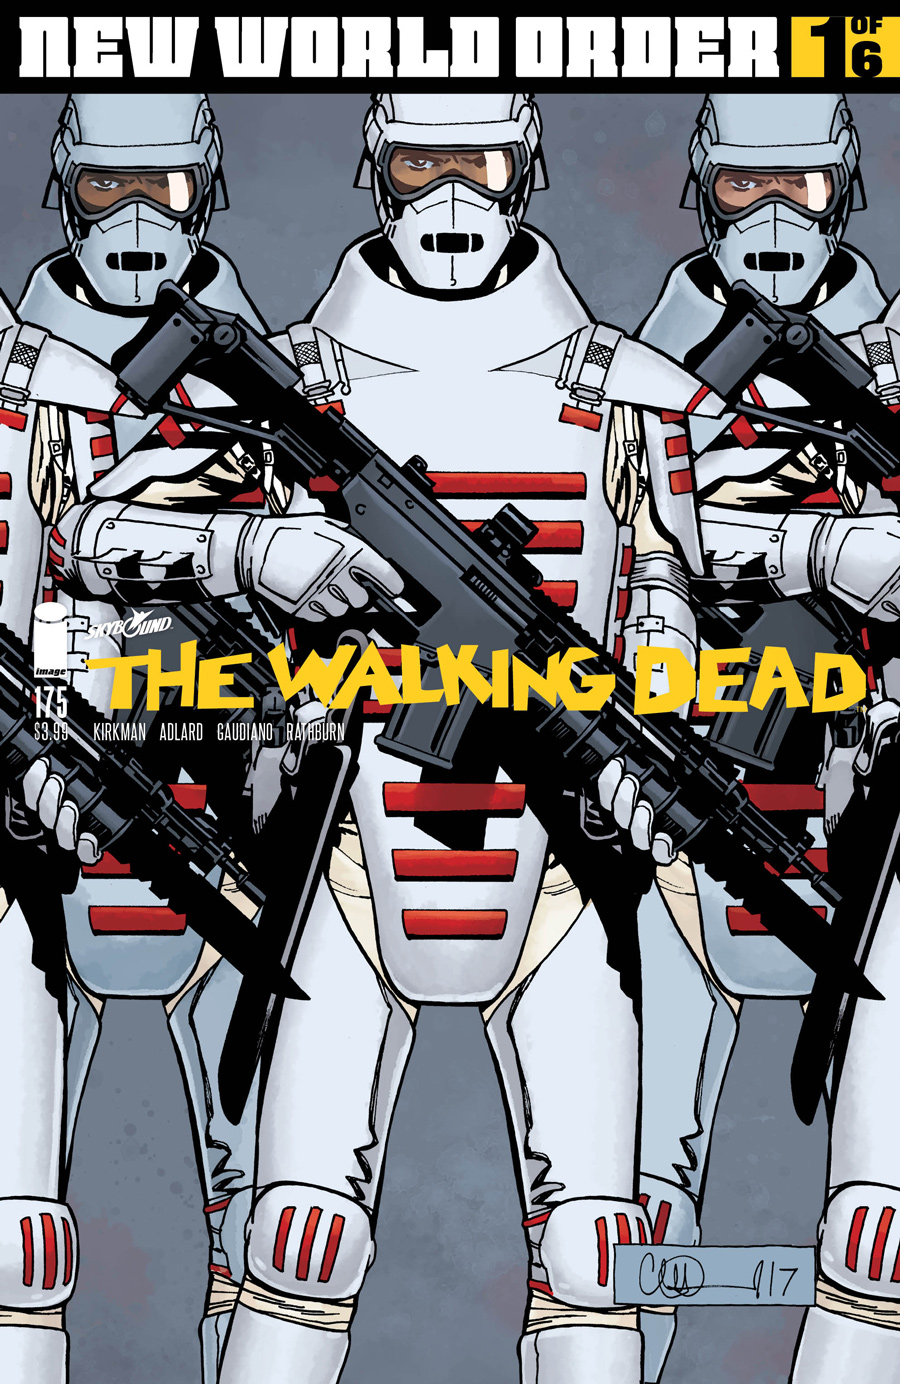 [Discussão] — The Walking Dead - Página 2 The-walking-dead-175-capa